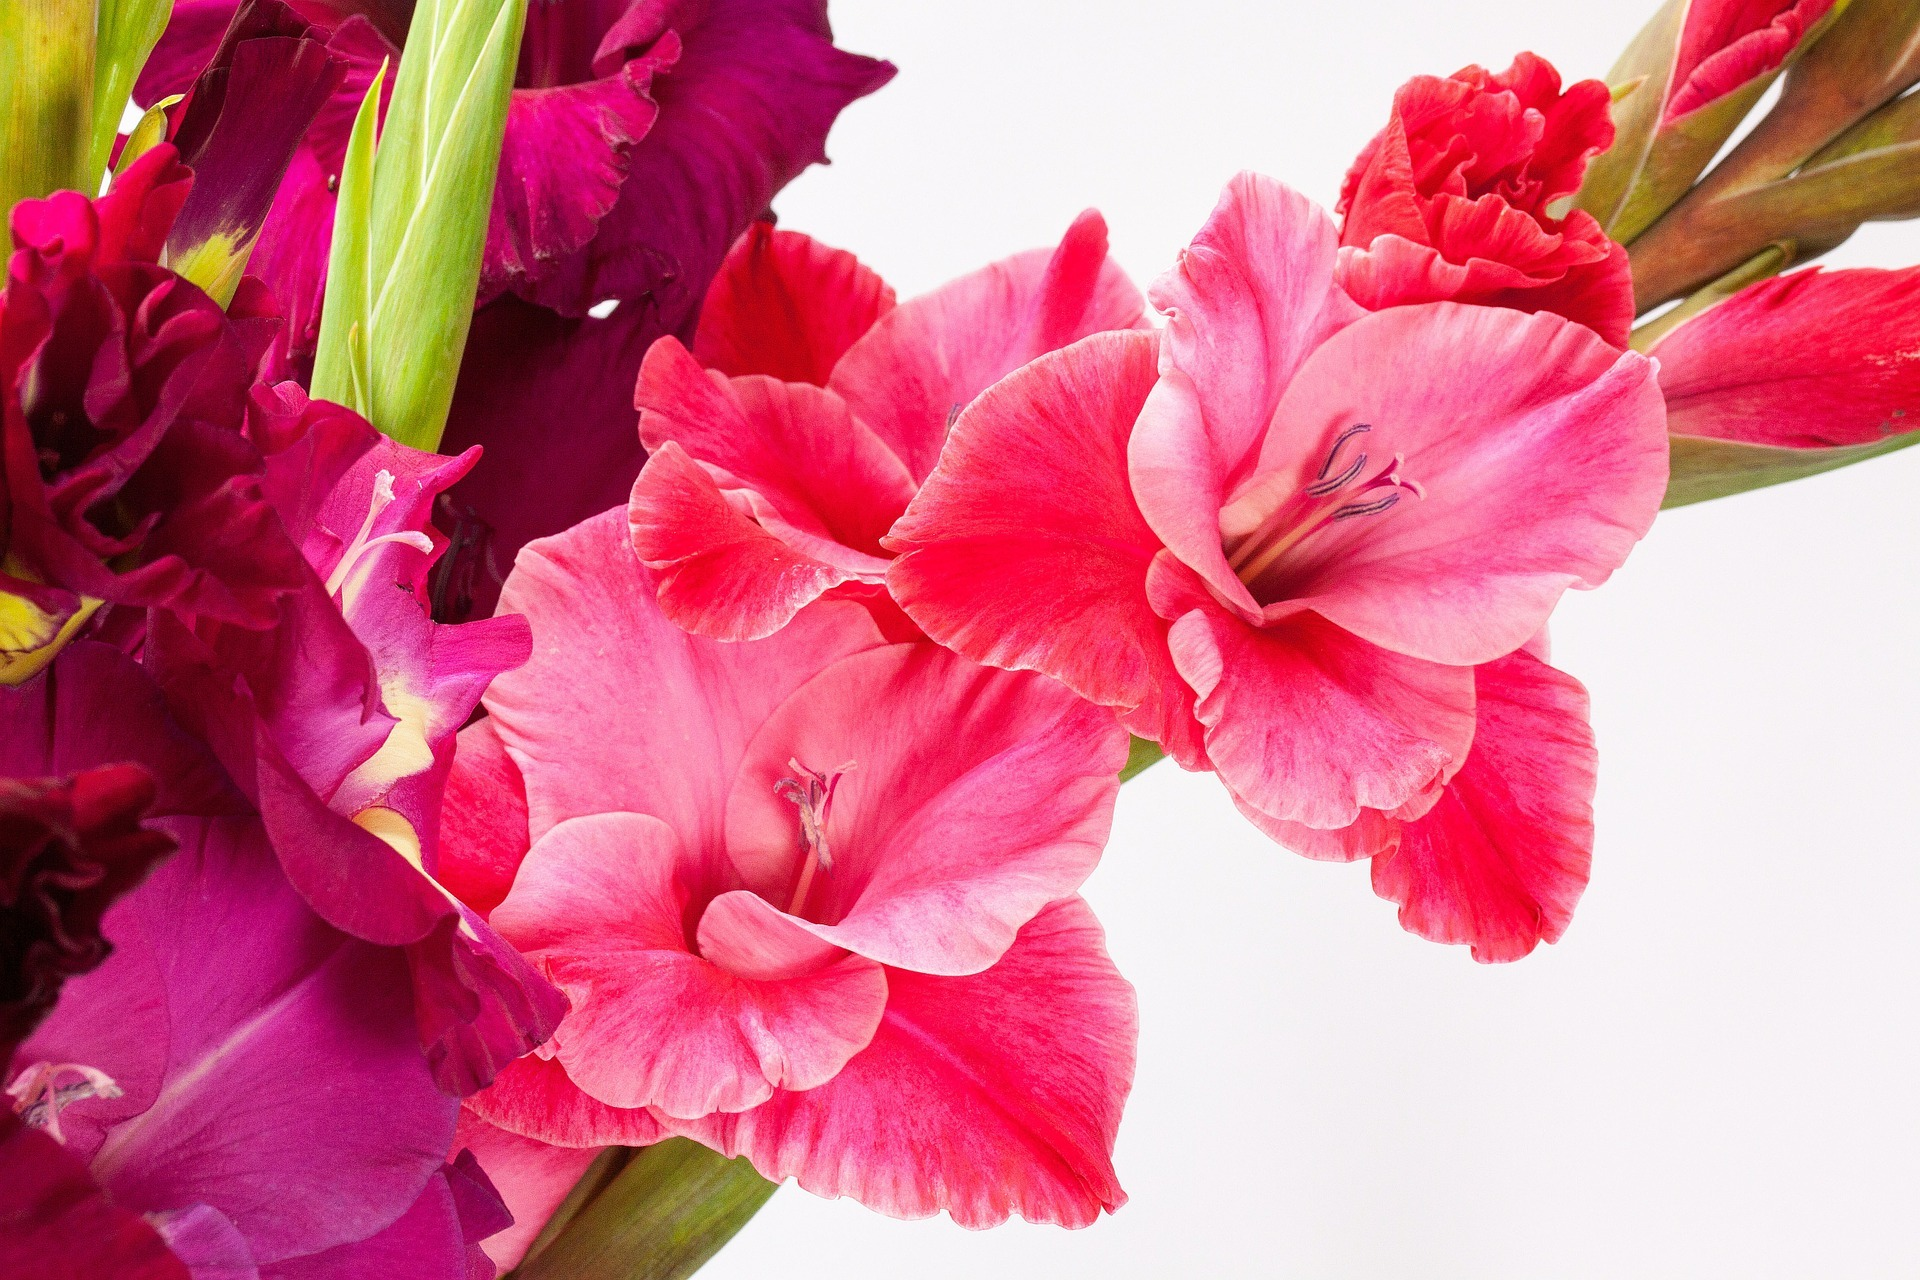 August Birth Flowers: Gladiolus and Poppy   Meanings   The Old ...